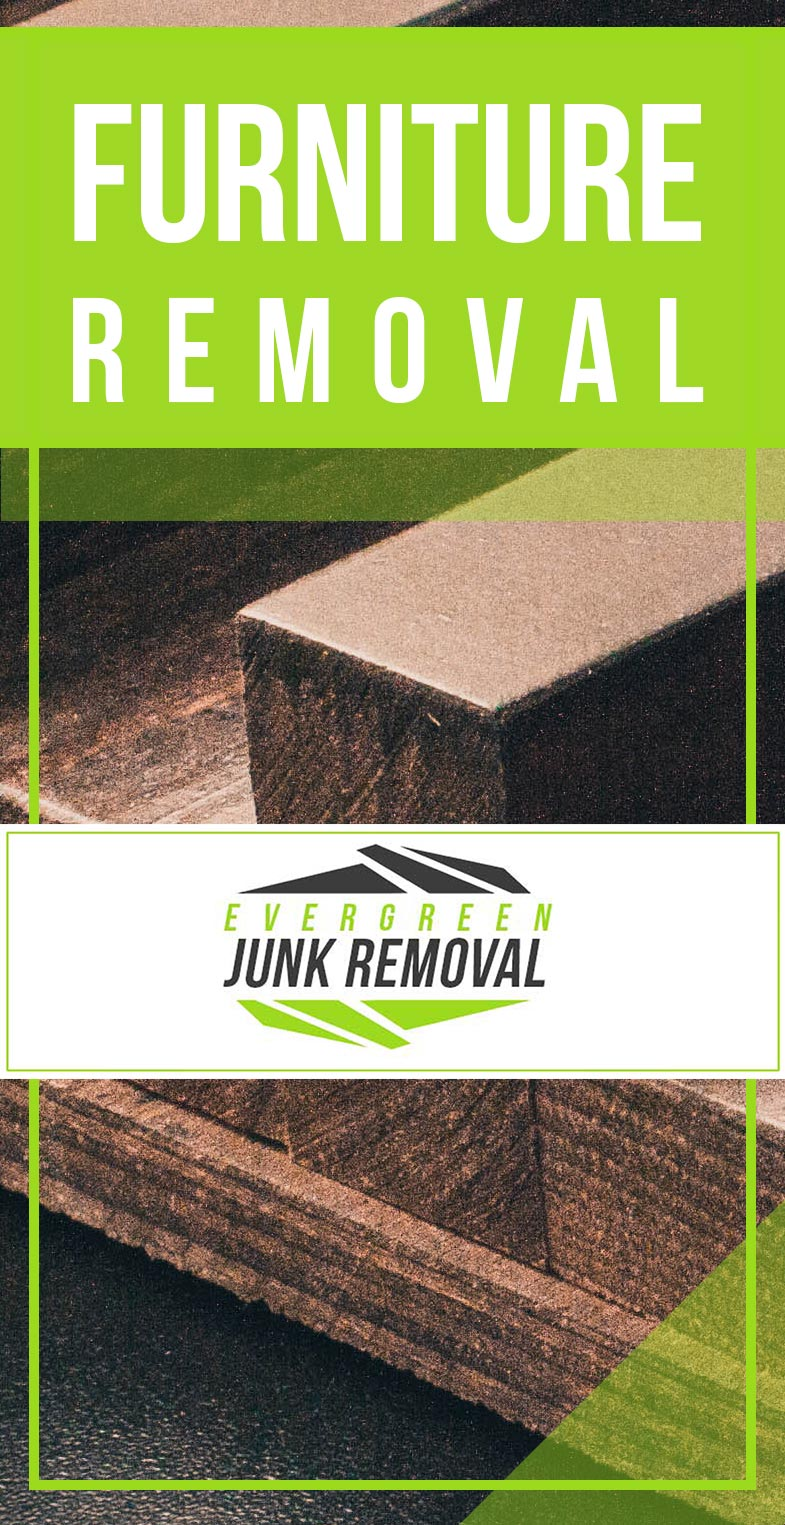 Junk Removal Tequesta Furniture Removal